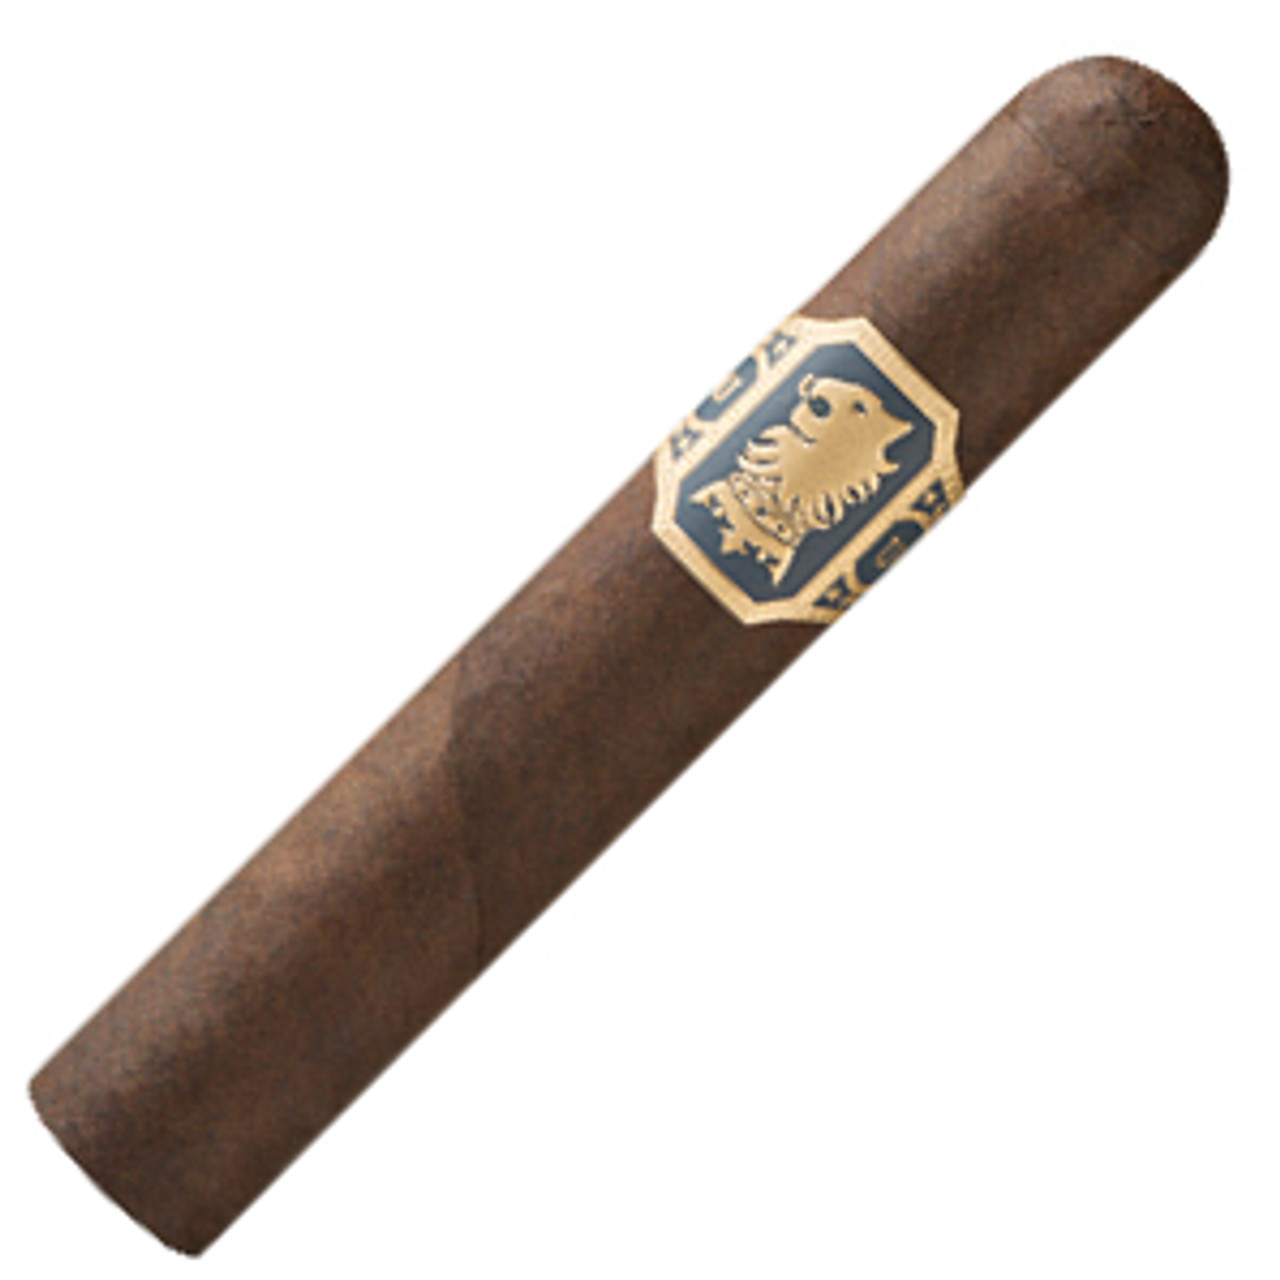 Undercrown Robusto Cigars - 5 x 54 (Box of 25)